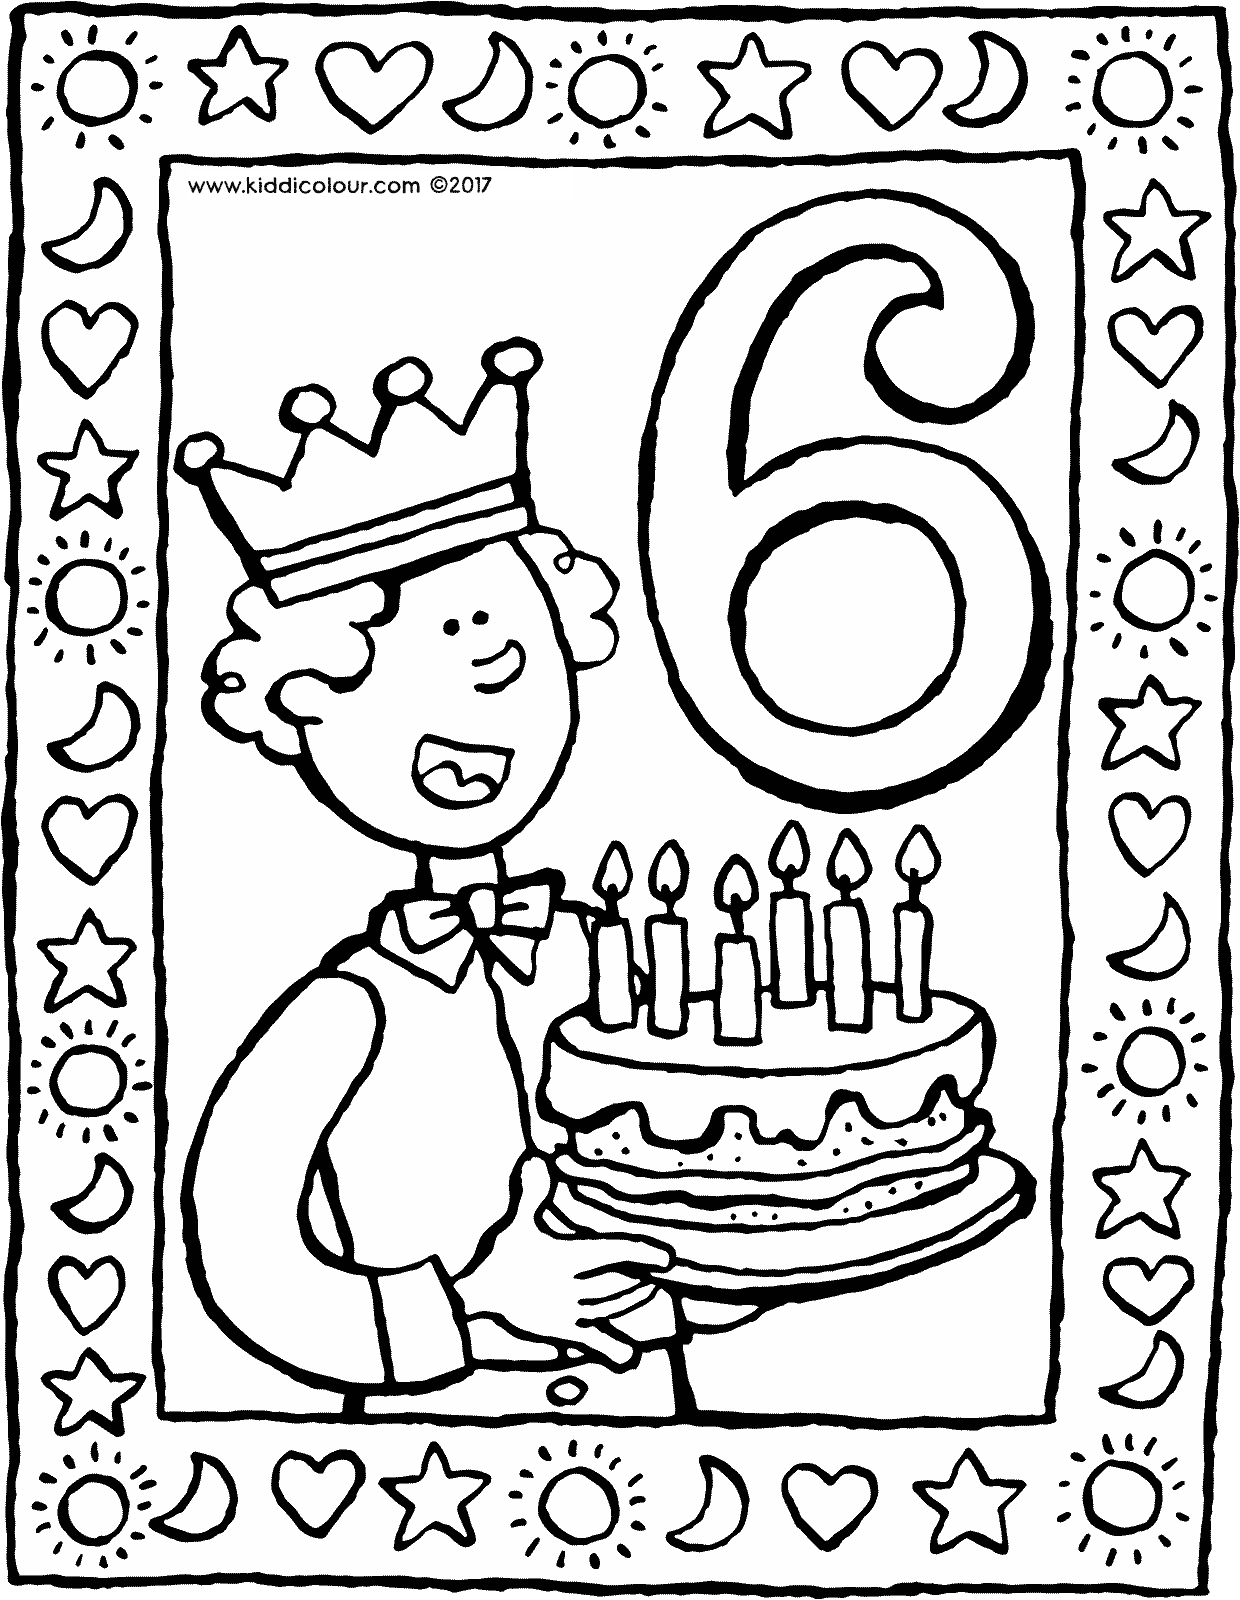 printable coloring pages for 6 year olds 6 year old coloring pages free printable 6 year old for printable coloring 6 year olds pages